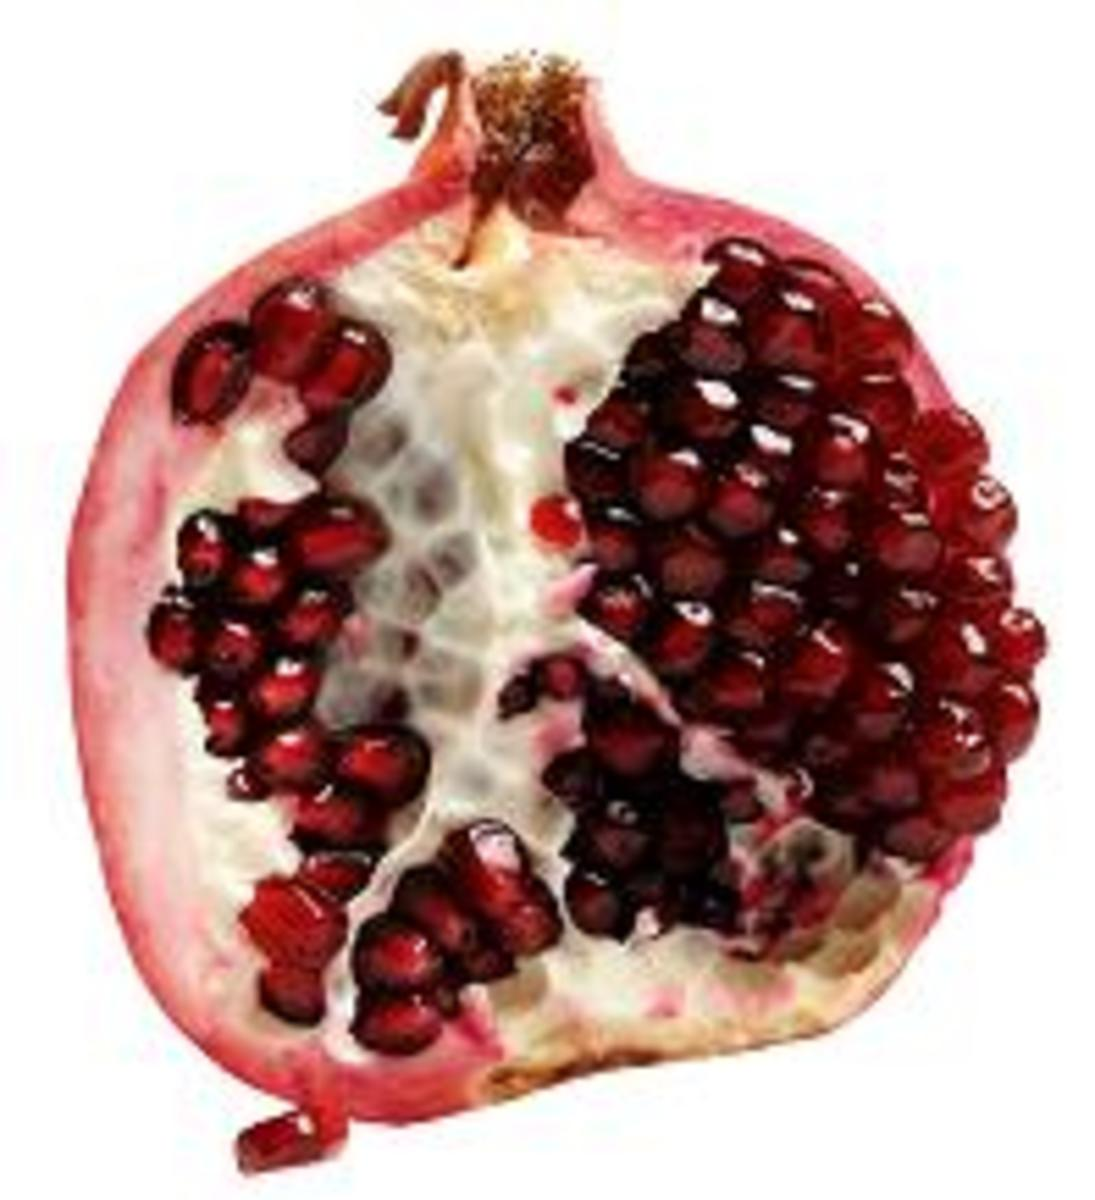 Creams And Serums With Pomegranate Have Anti-Aging Collagen And Elastin Benefits